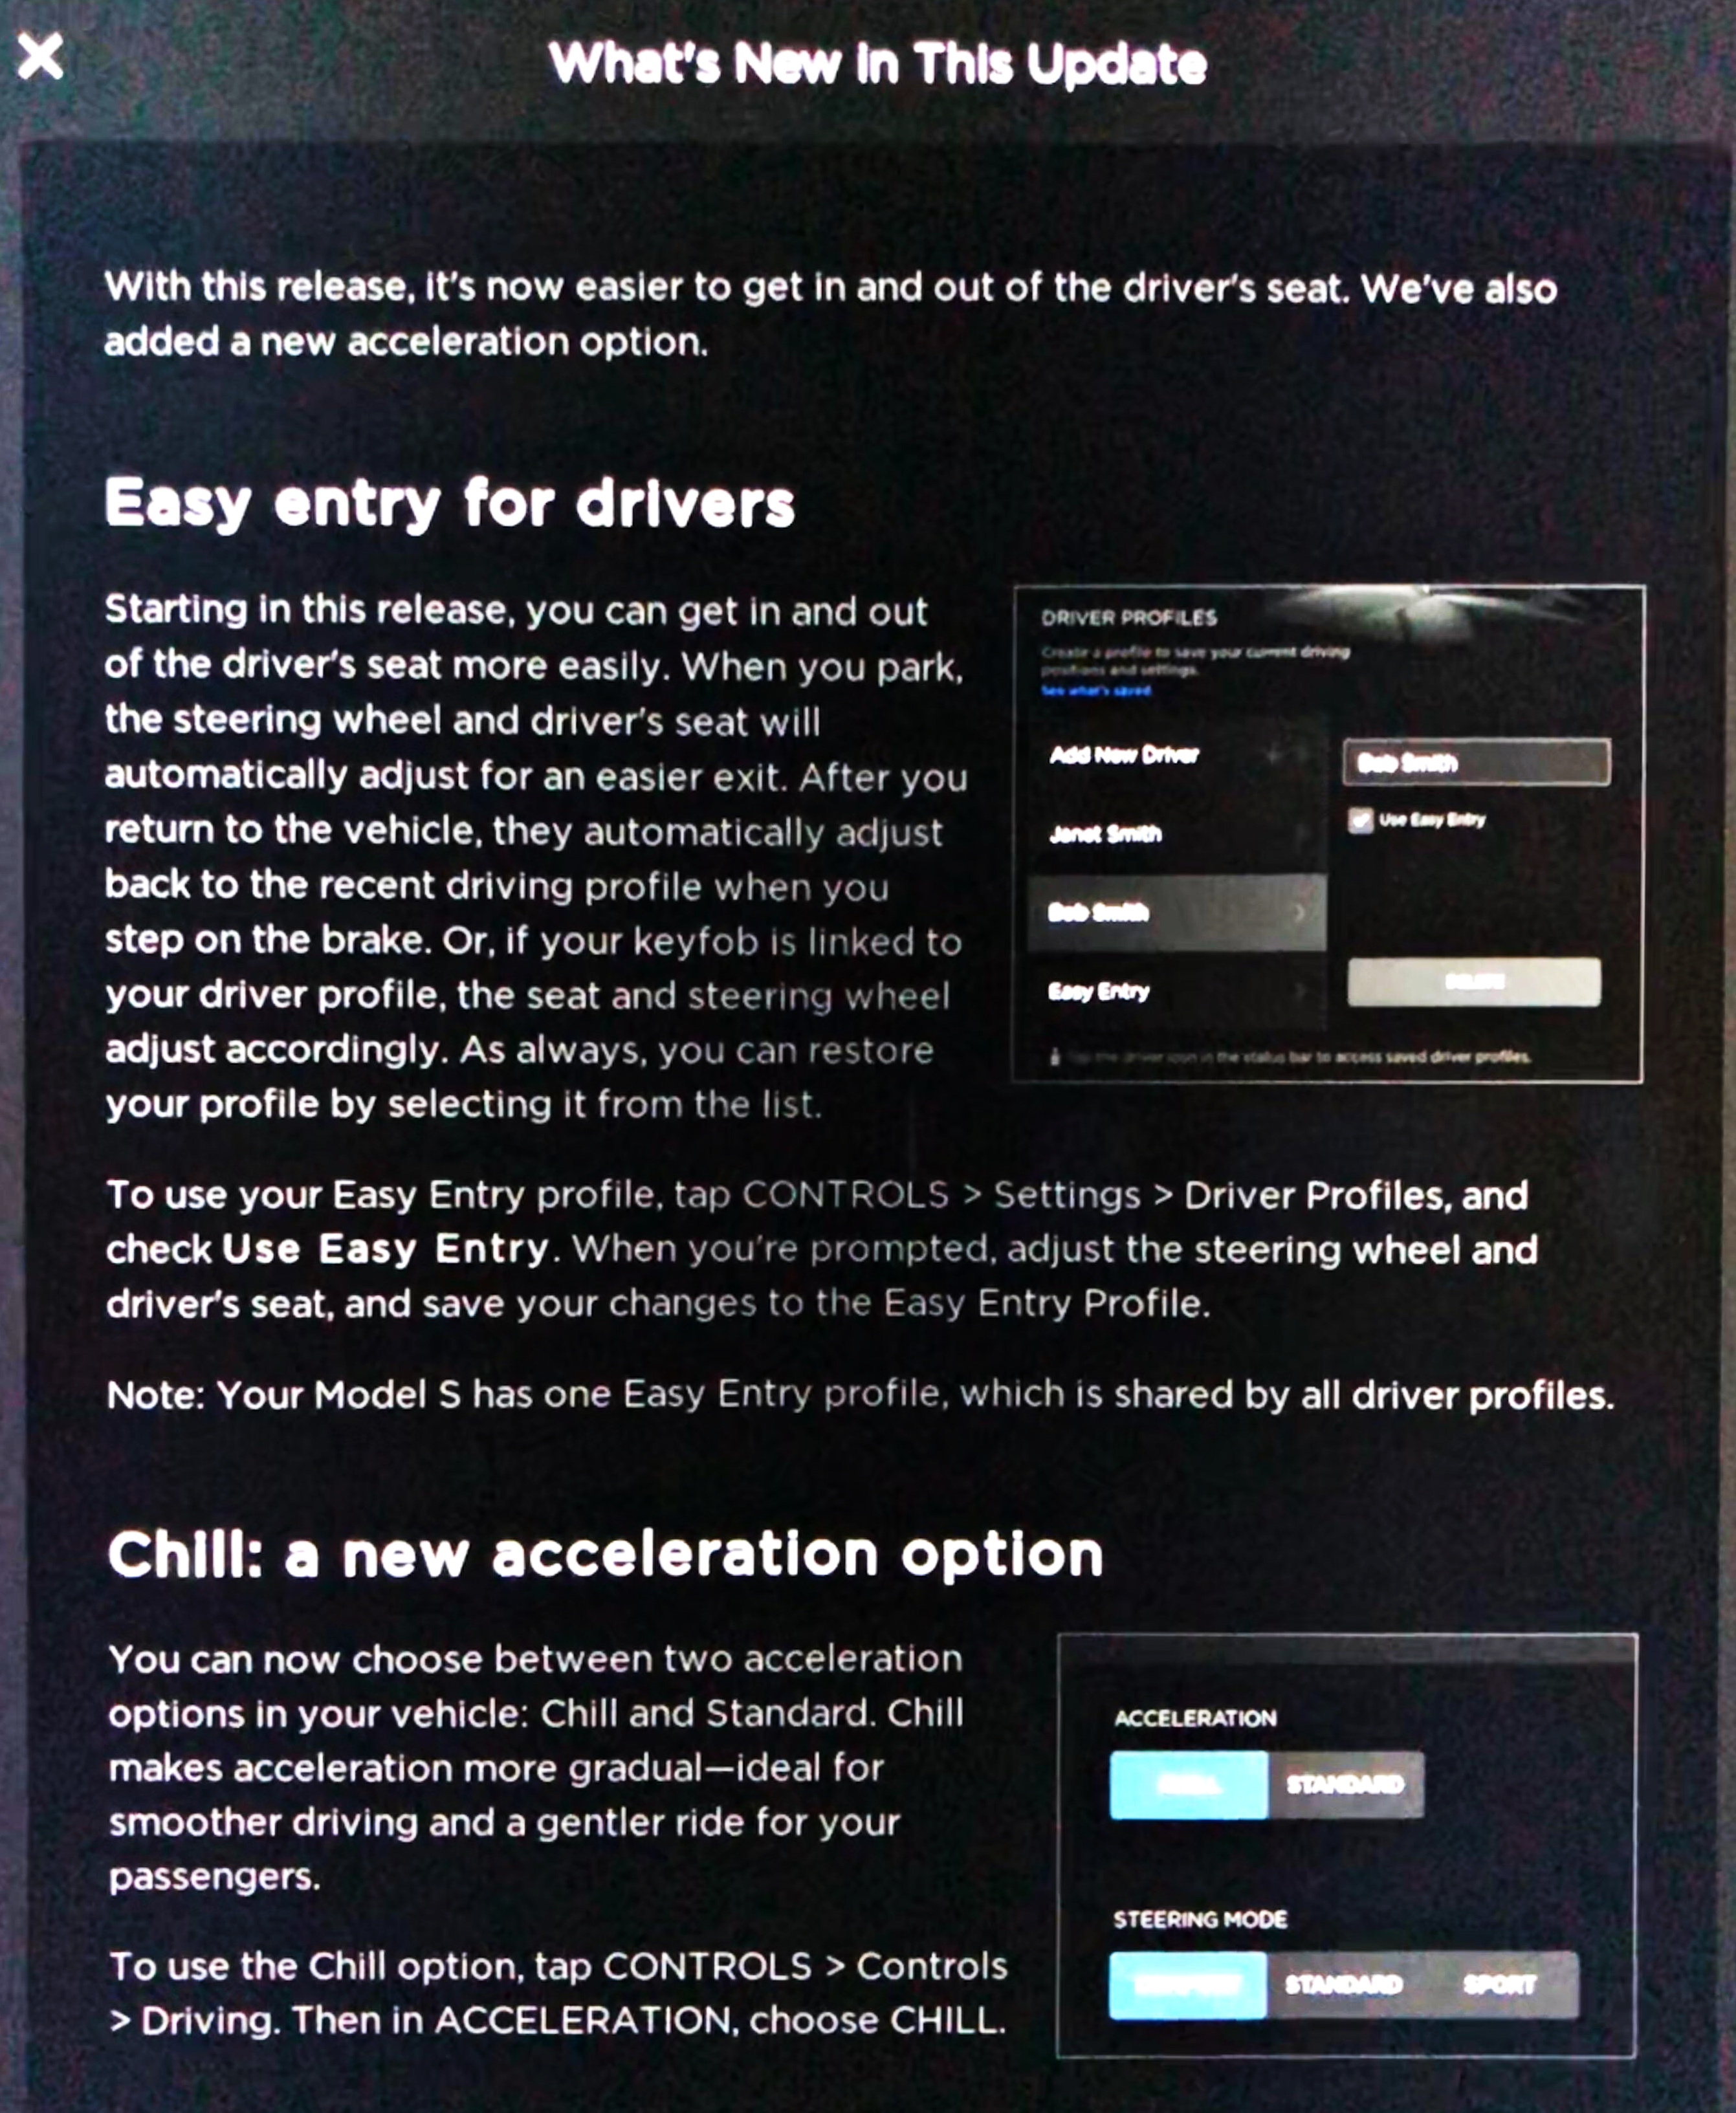 tesla-firmware-8-1-2017-44-easy-entry-release-notes